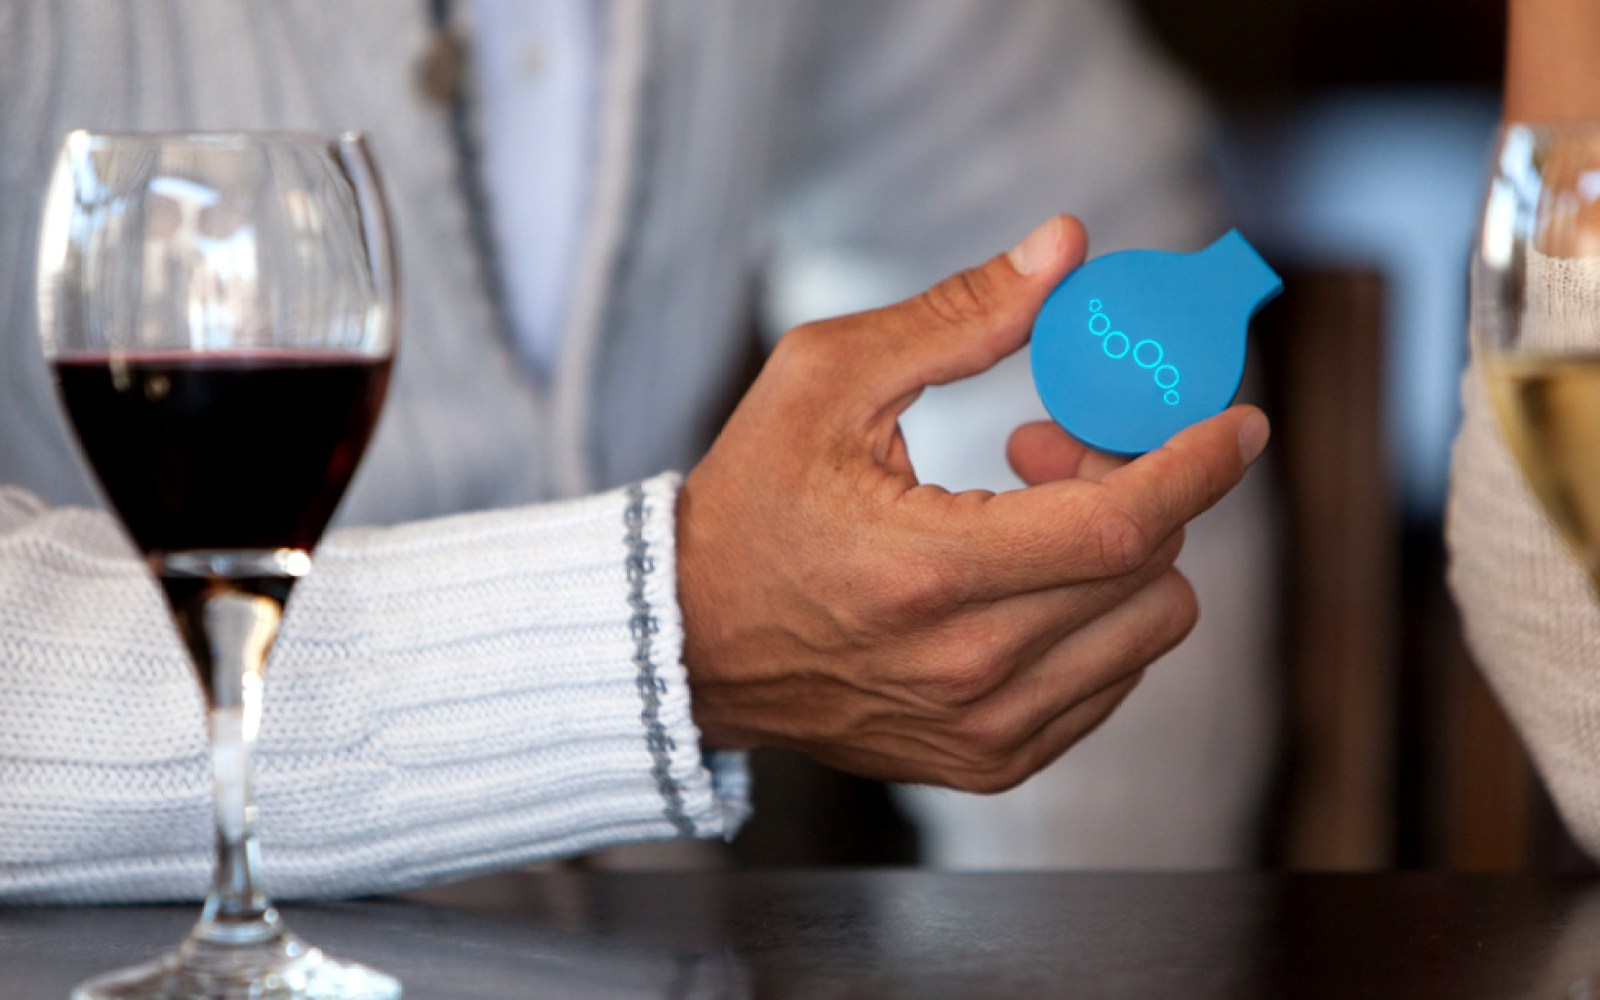 Breeze breathalyzer tracks your drinking in HealthKit and connects you w/ Uber when you get too drunk